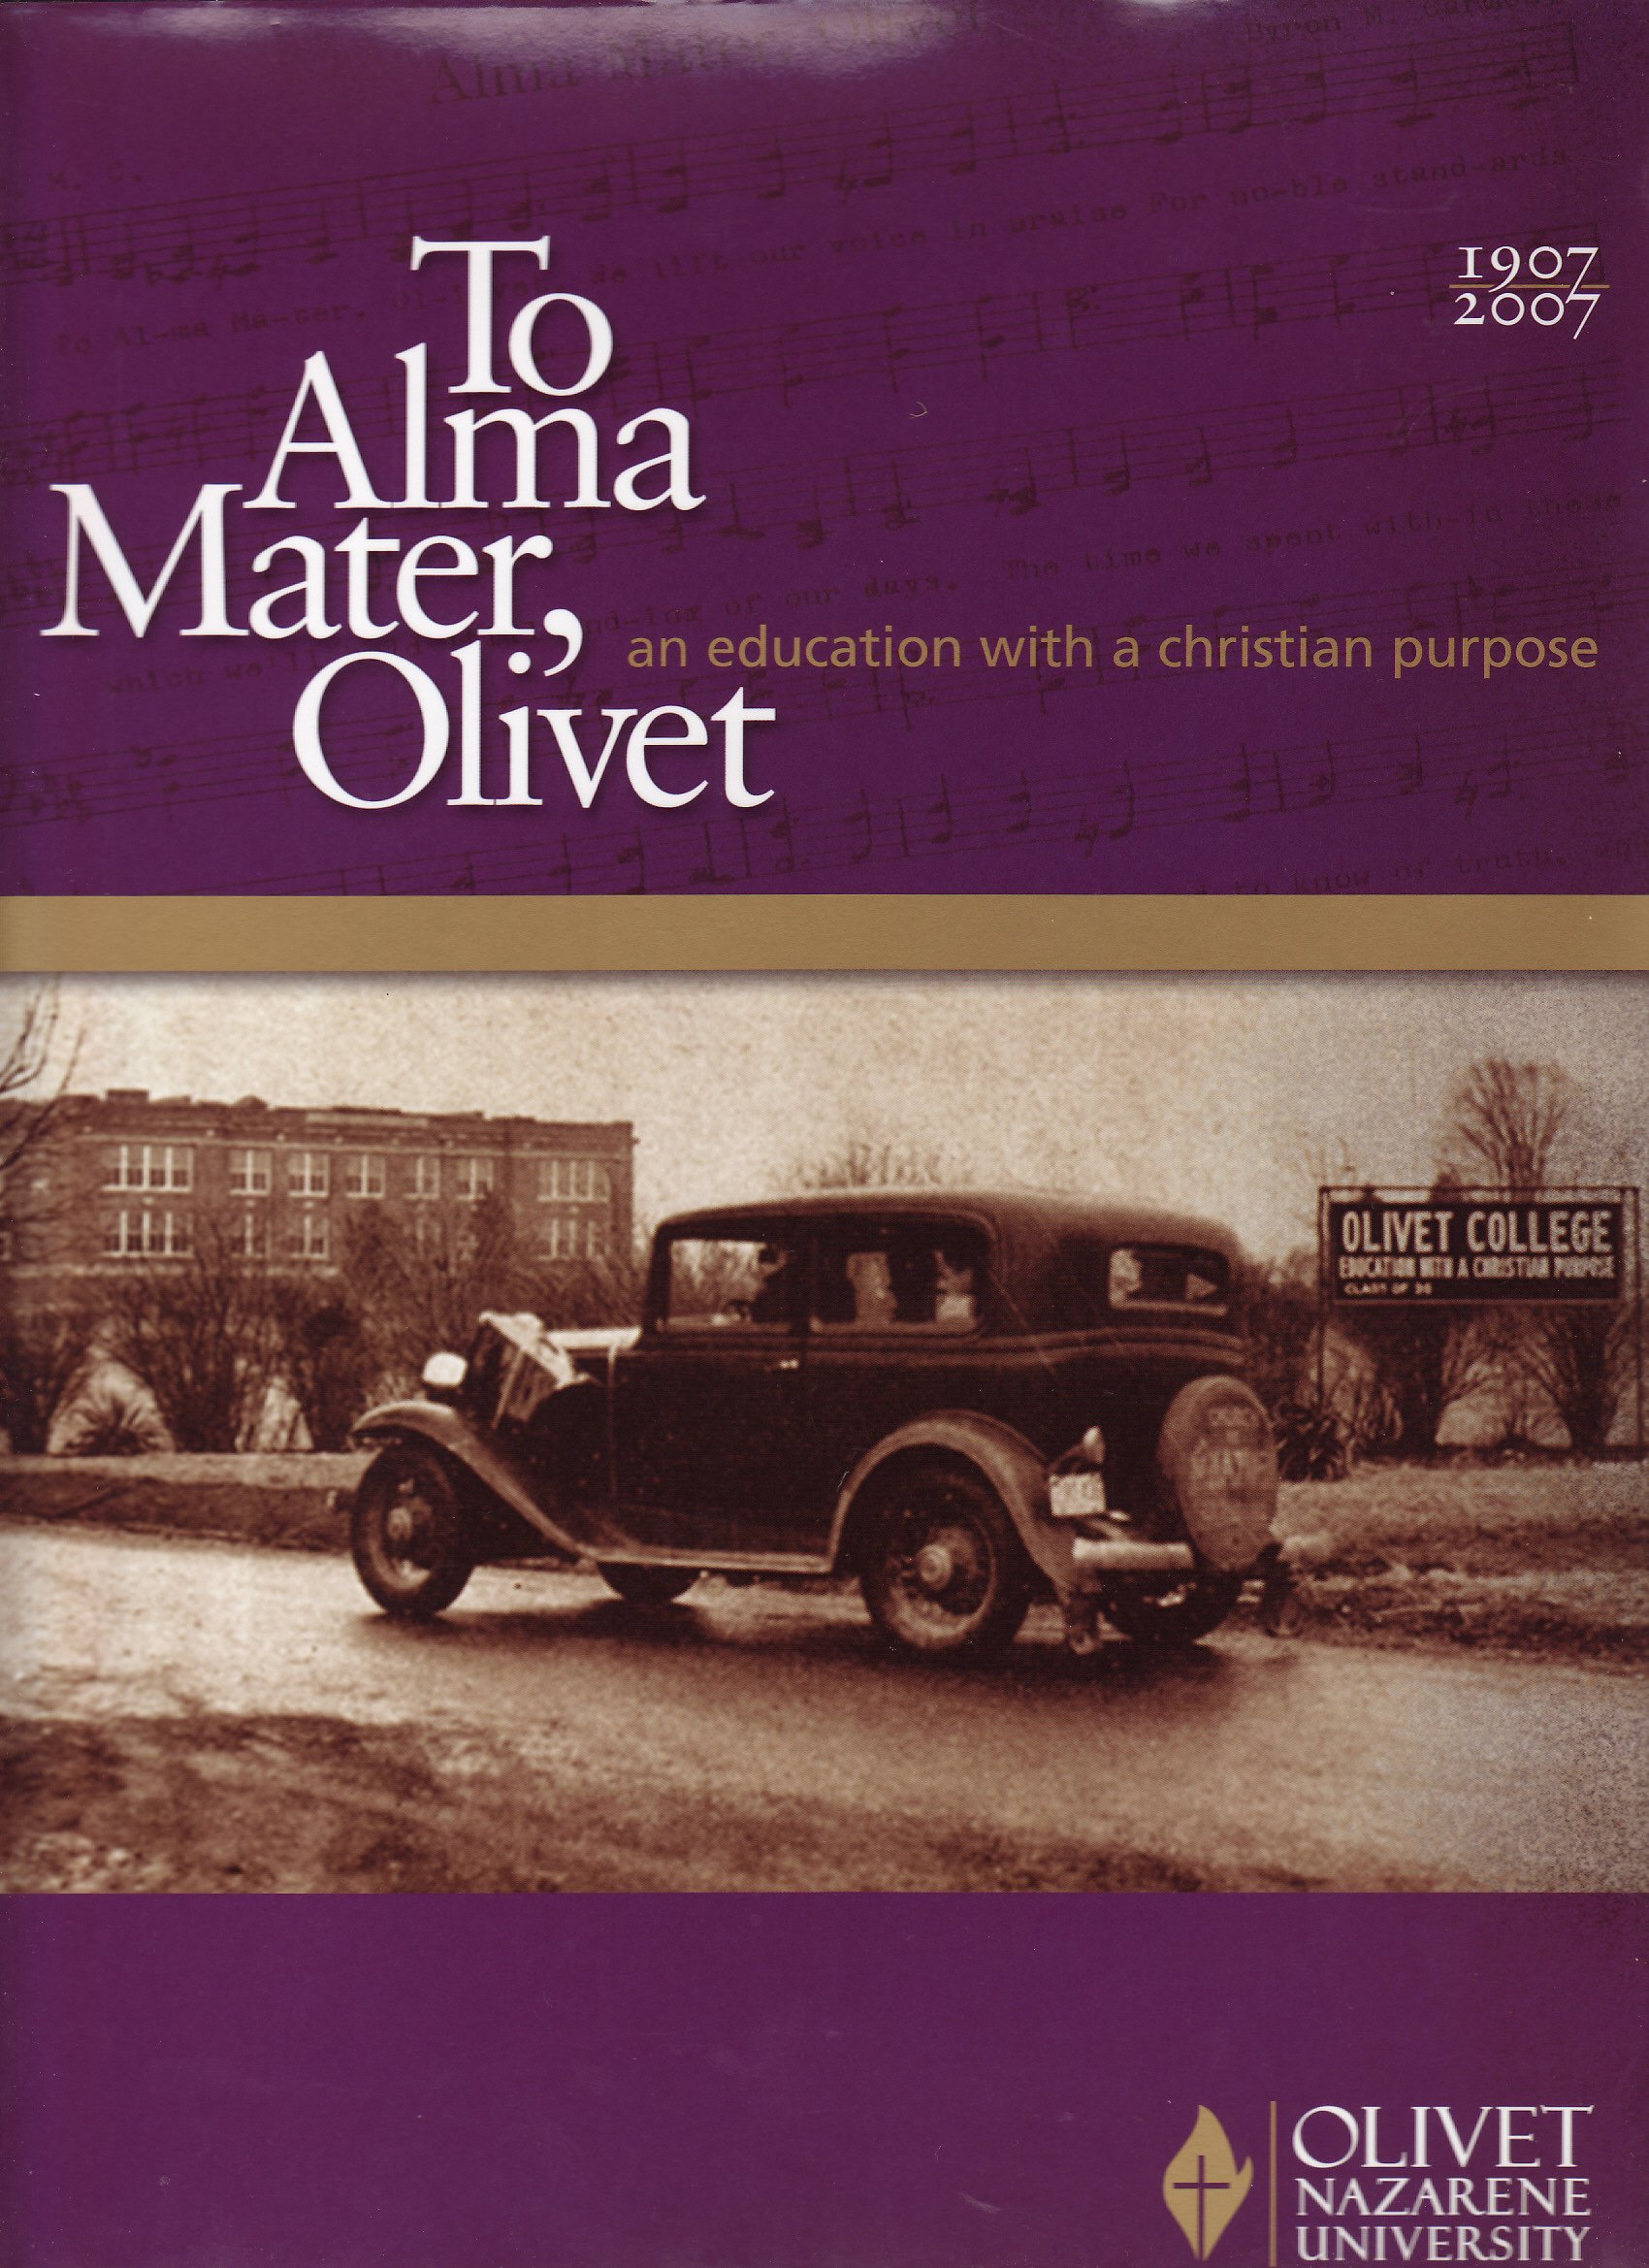 To Alma Mater, Olivet: An Education With a Christian Purpose pdf